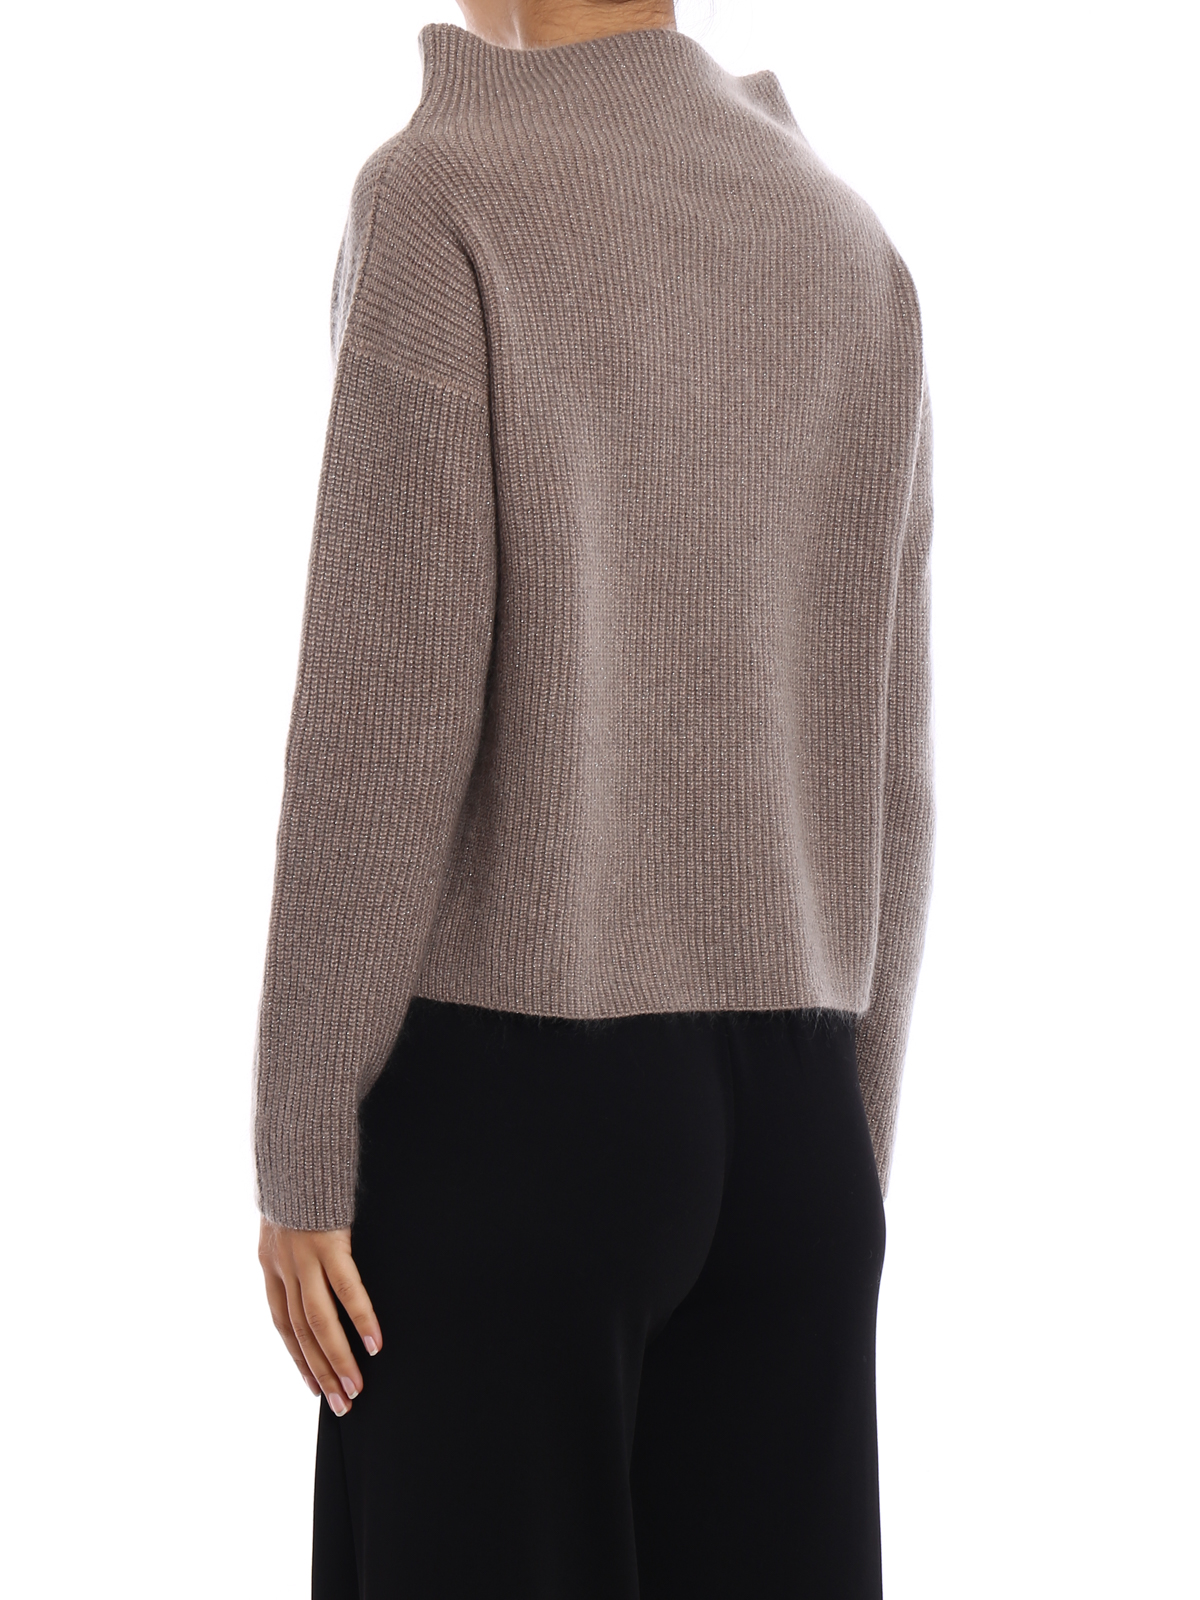 iKRIX FABIANA FILIPPI: Turtlenecks \u0026 Polo necks - Merino wool boxy  turtleneck